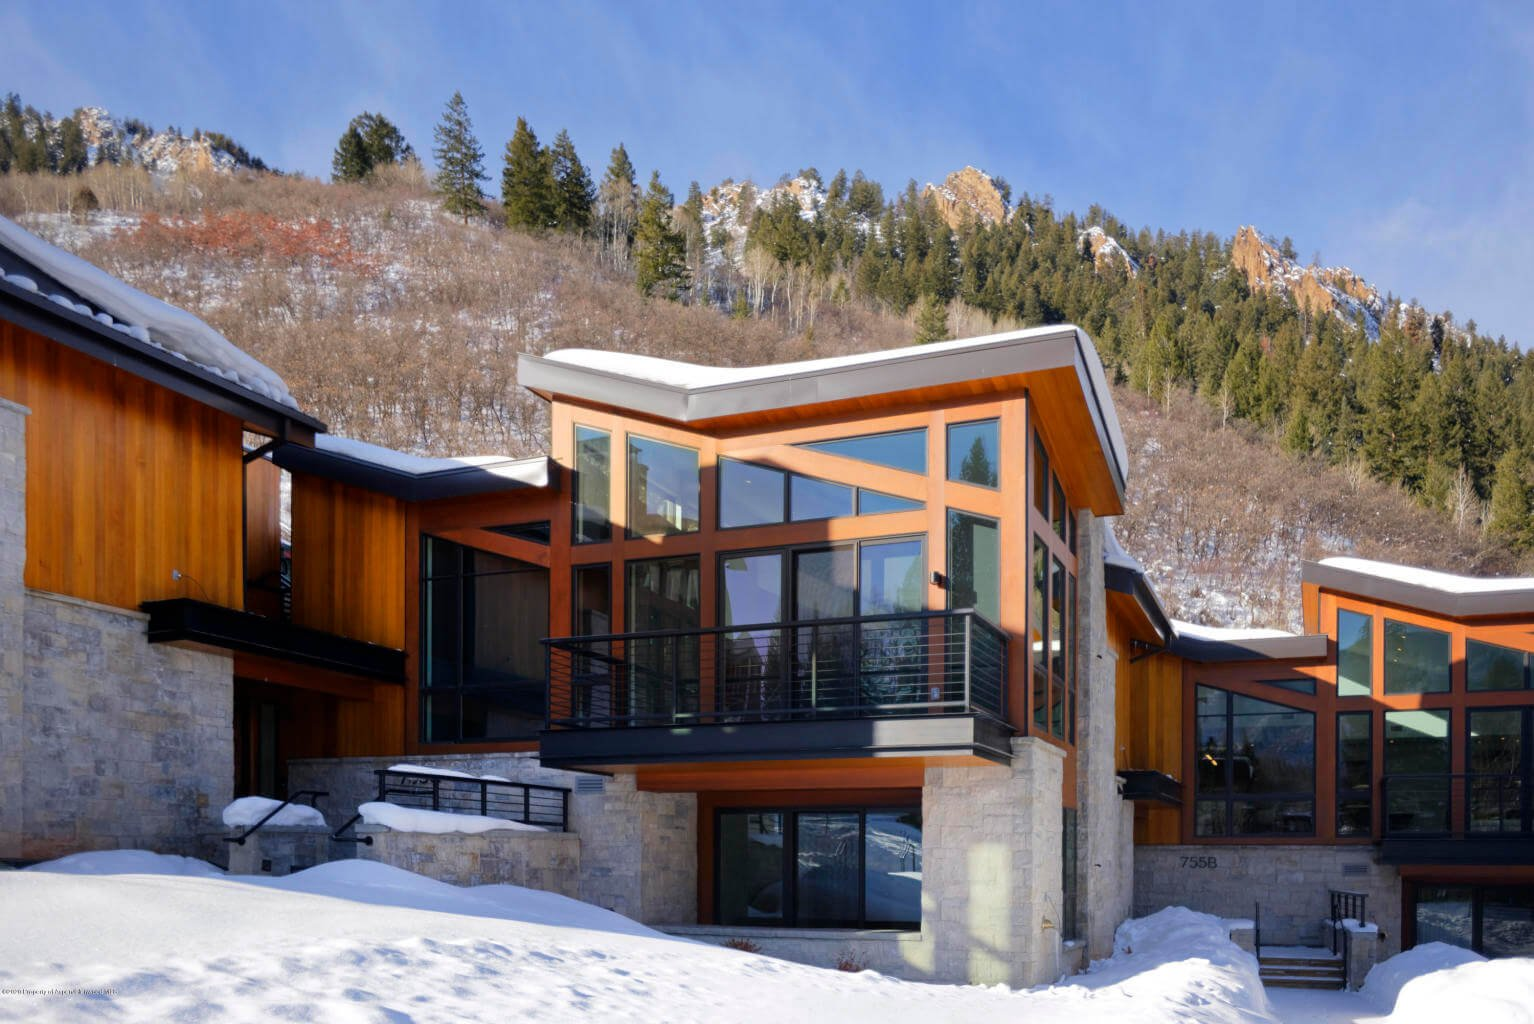 OneAspen Townhome at 755 S Aspen St Unit B Sells for $13.89M/$2,346 SF Unfurn. Image